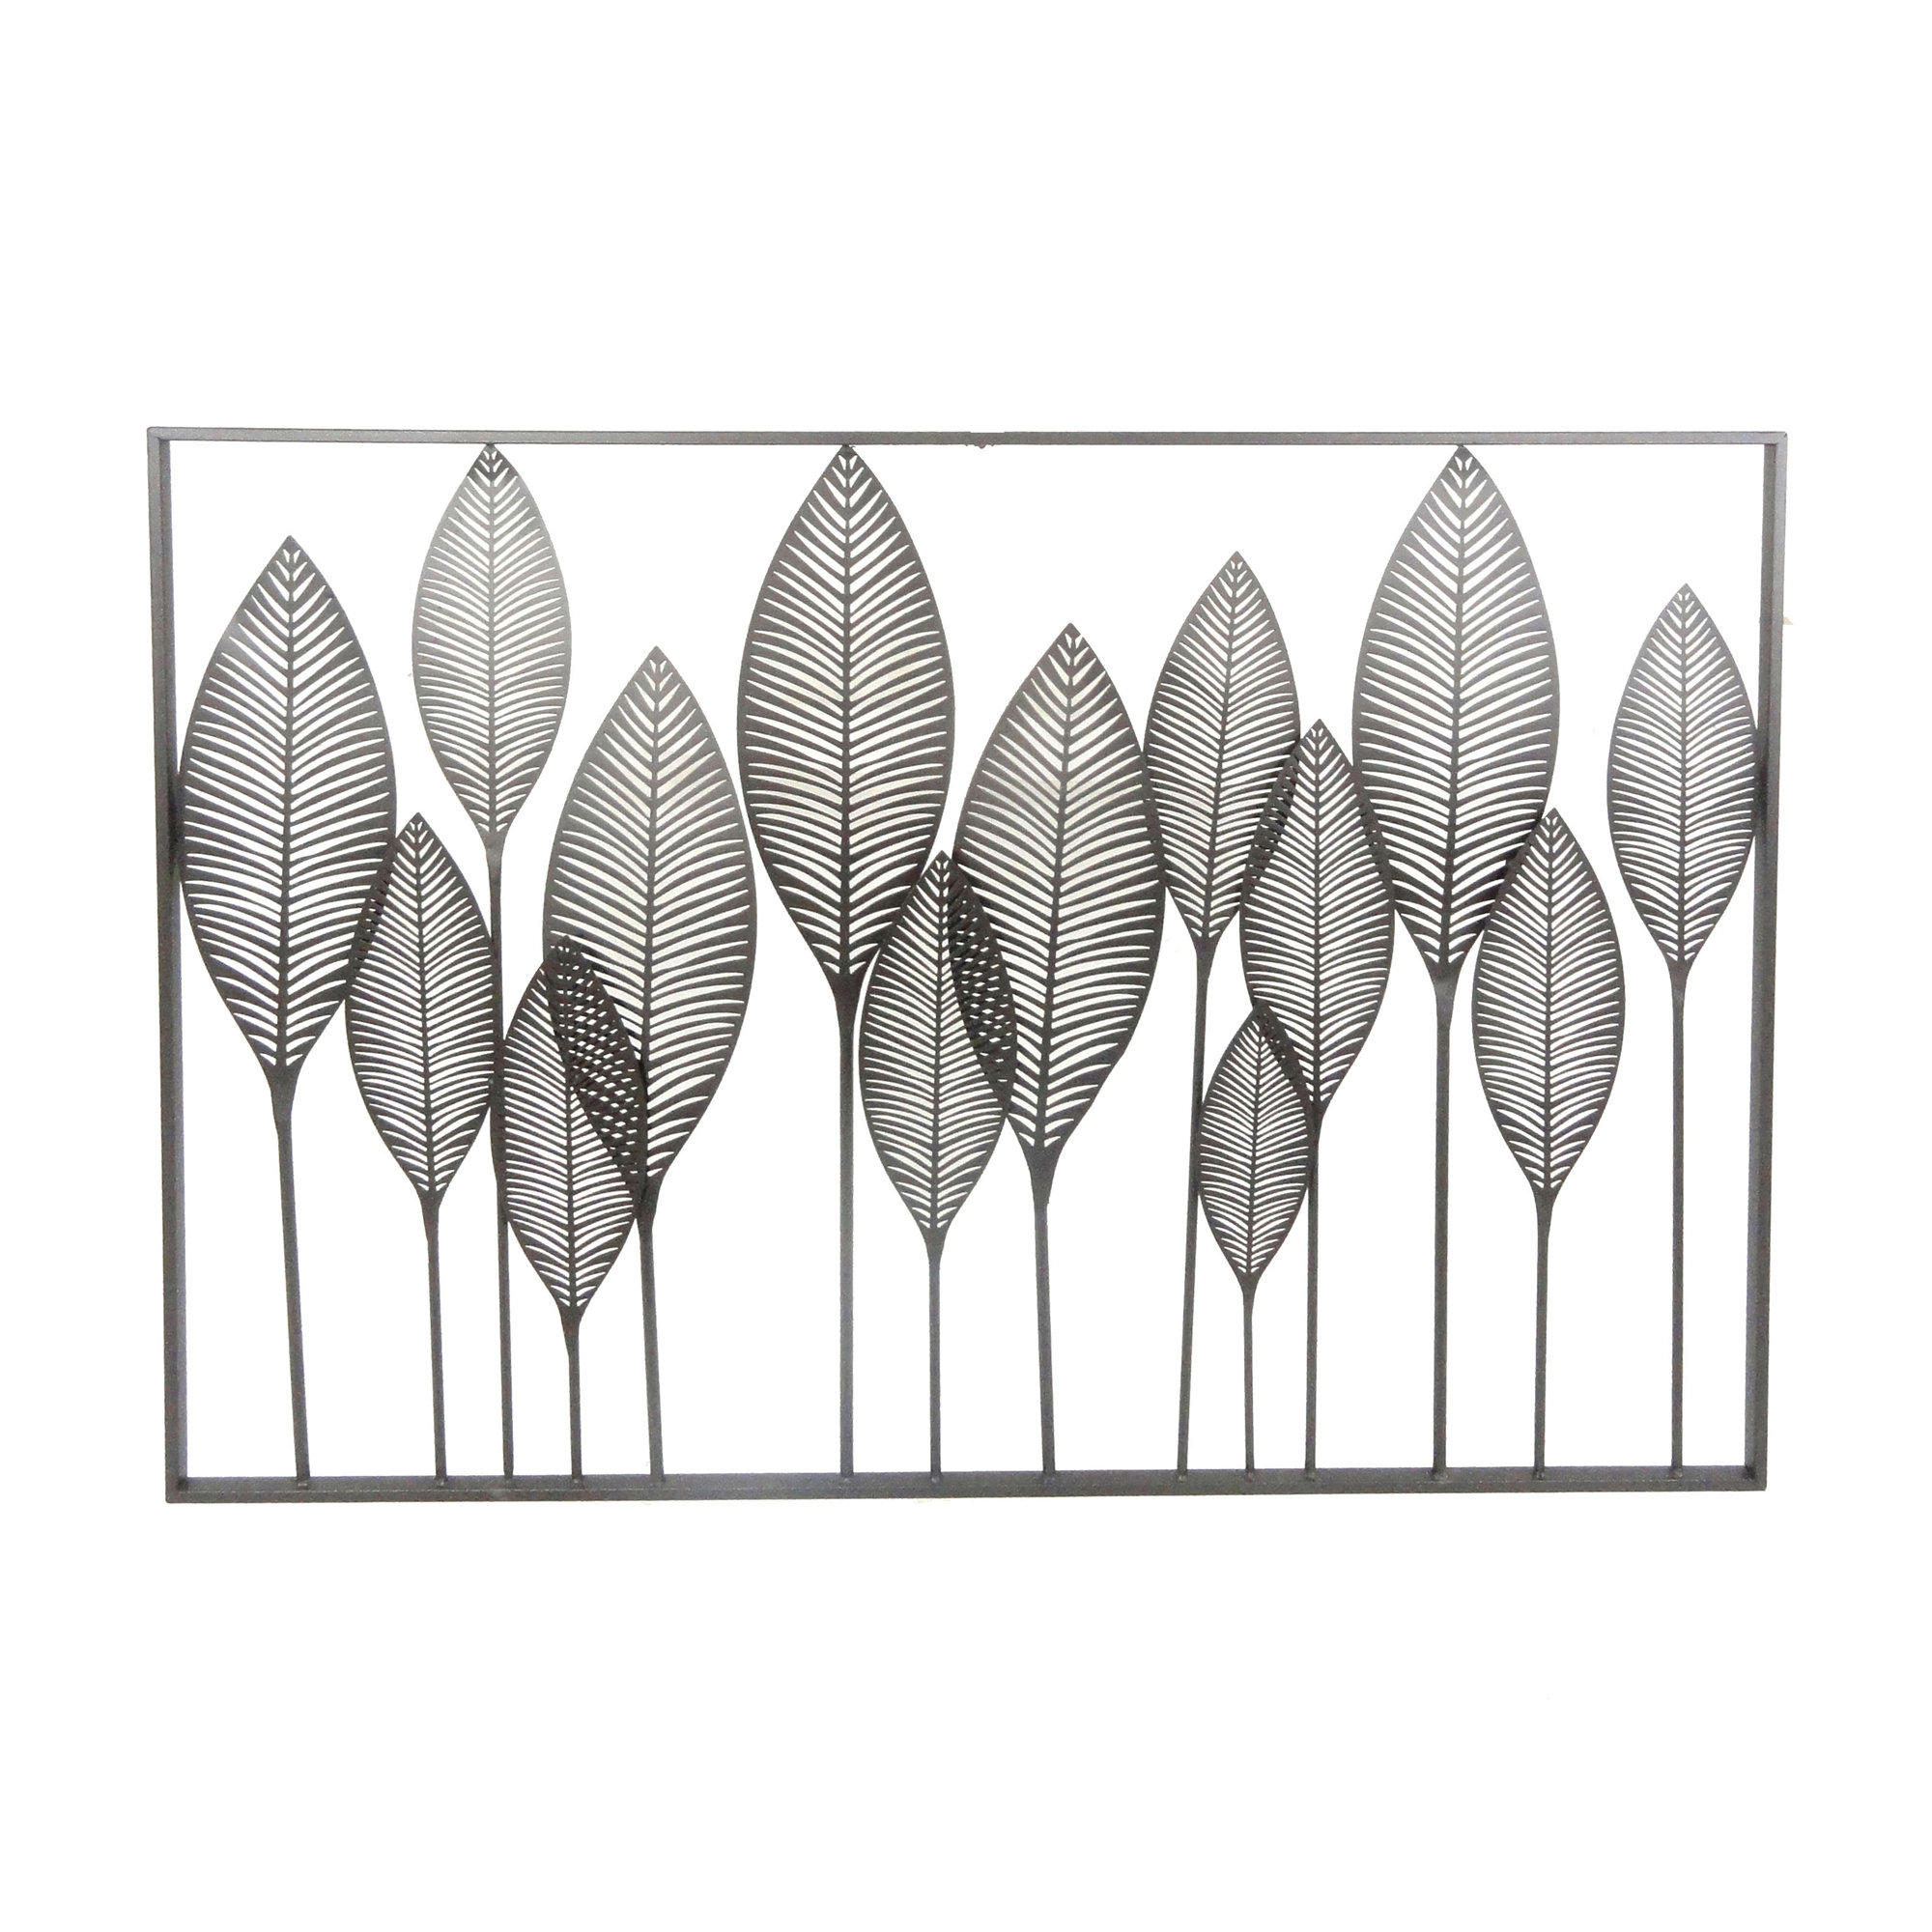 Red Barrel Studio Metal Leaves Wall Décor & Reviews | Wayfair.ca Throughout Metal Leaf Wall Decor By Red Barrel Studio (Gallery 3 of 30)